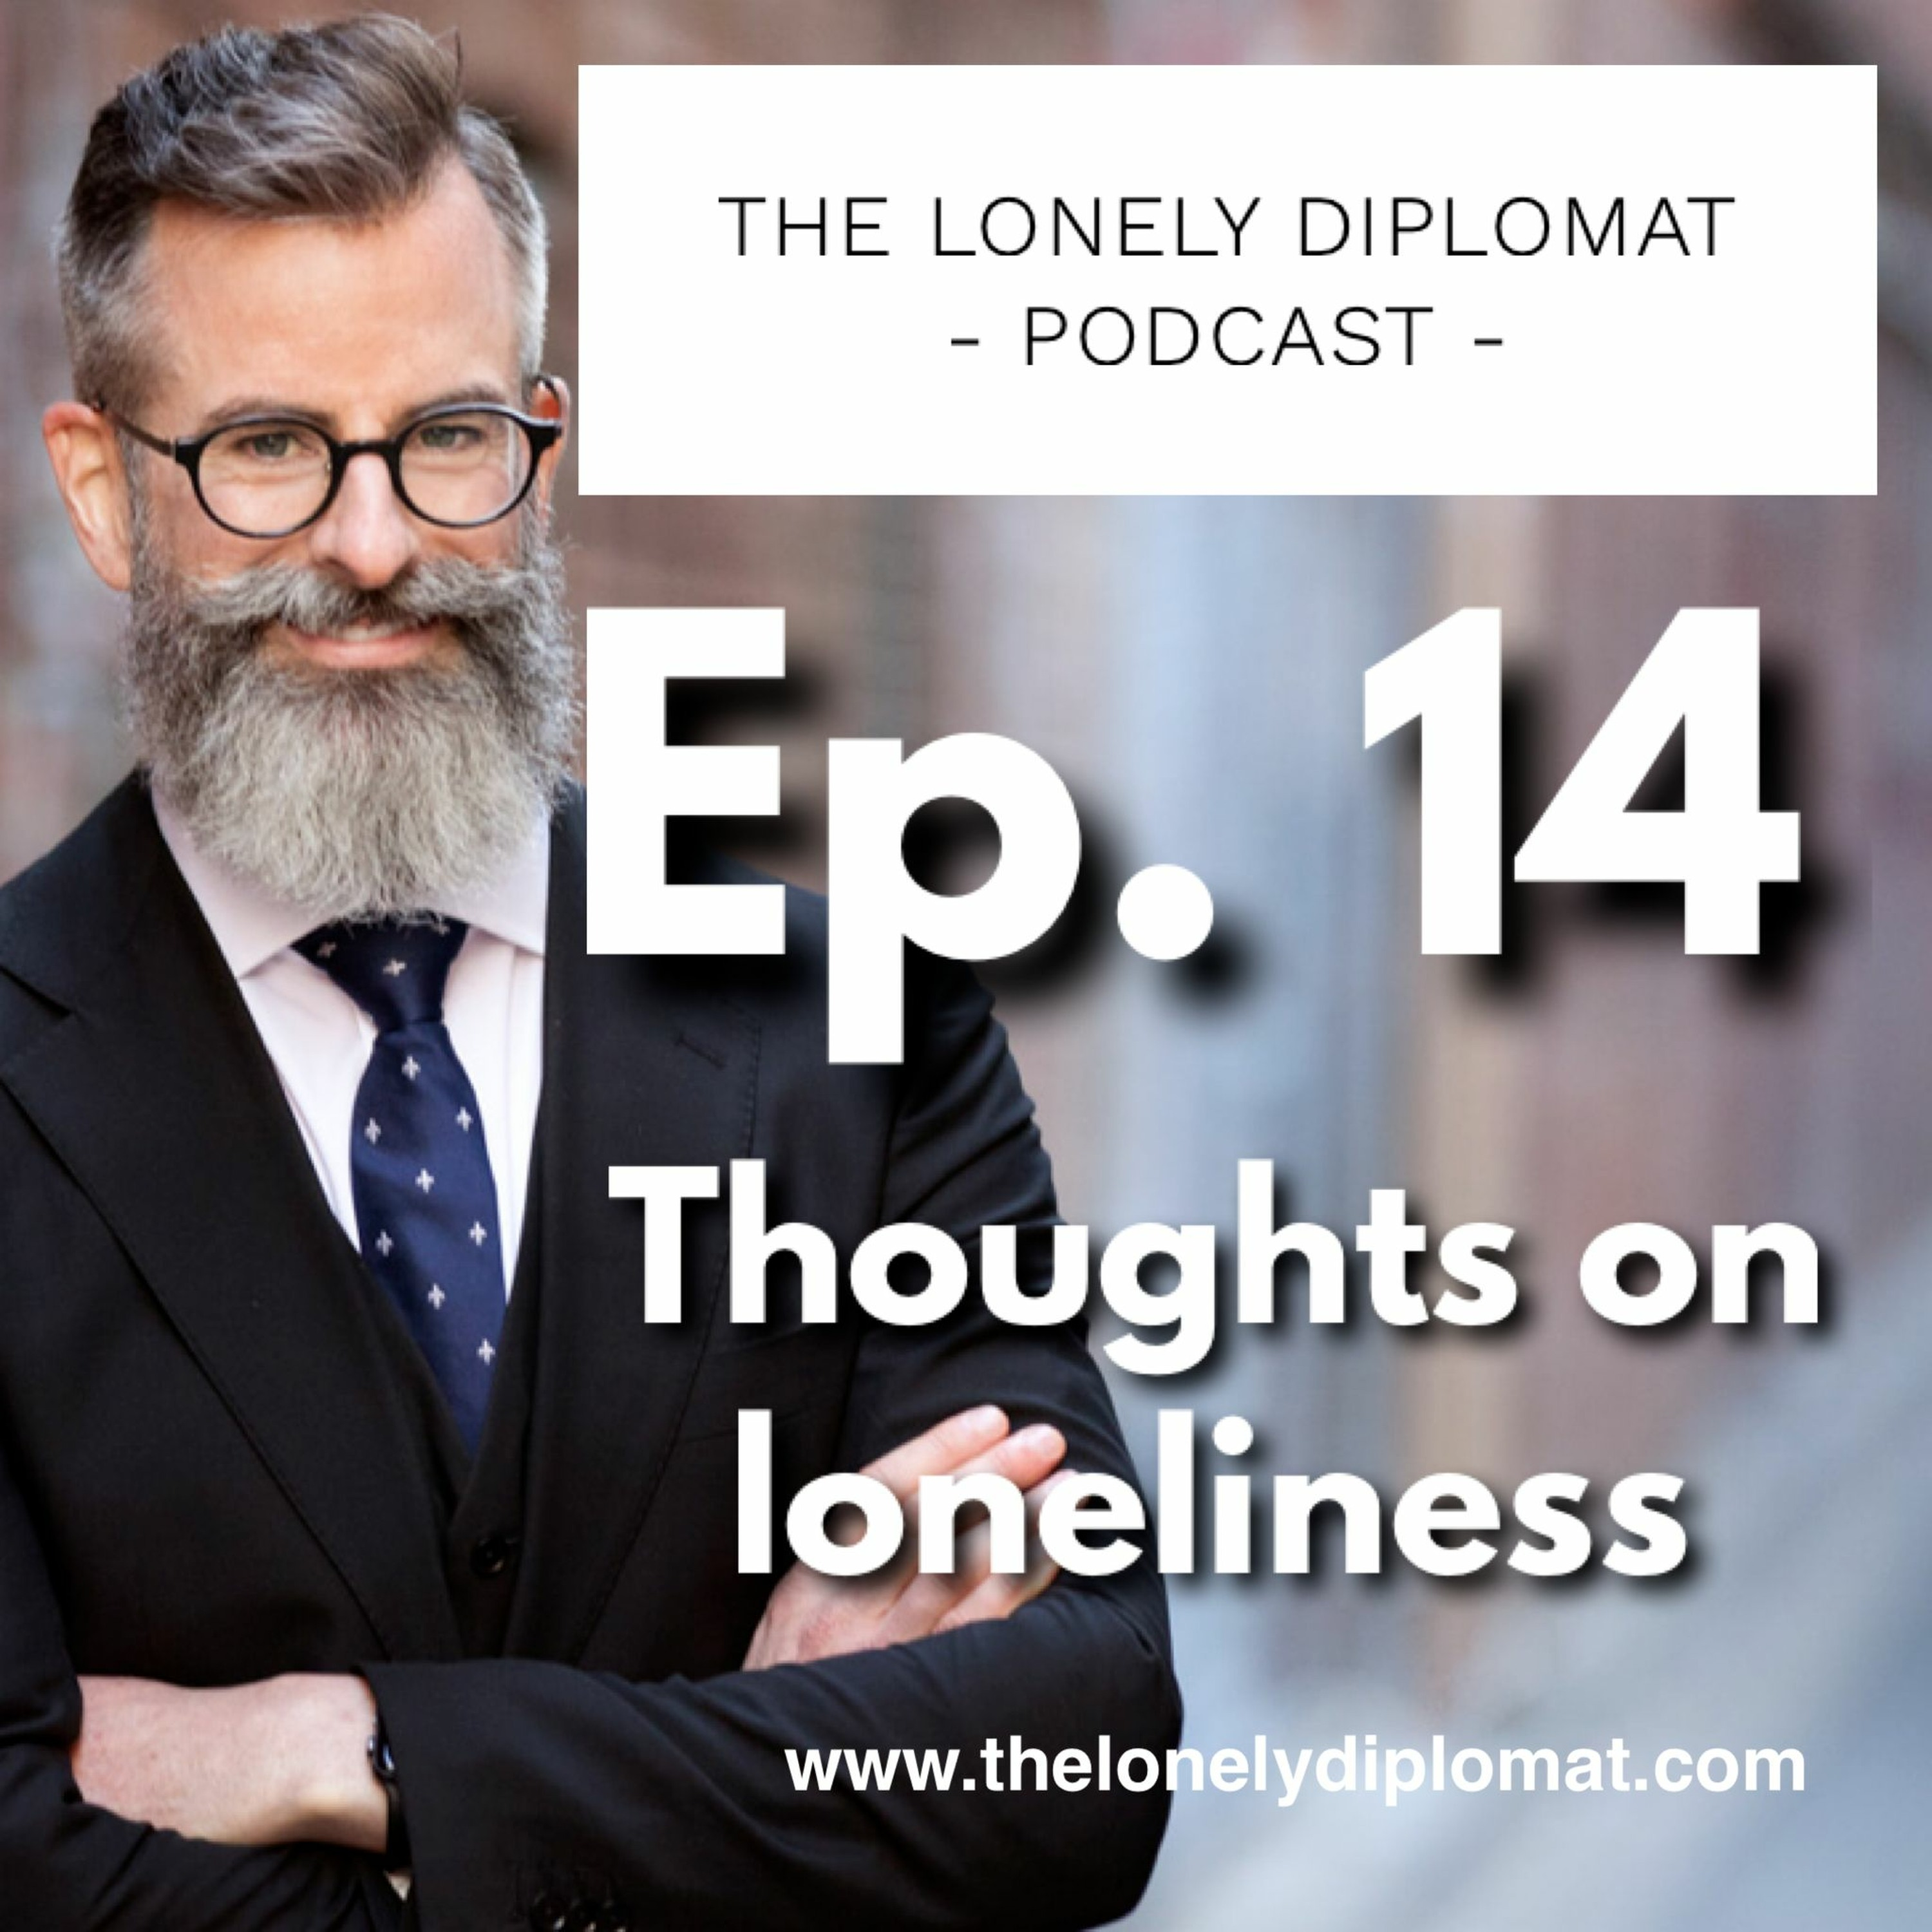 Ep. 14 - Thoughts on loneliness